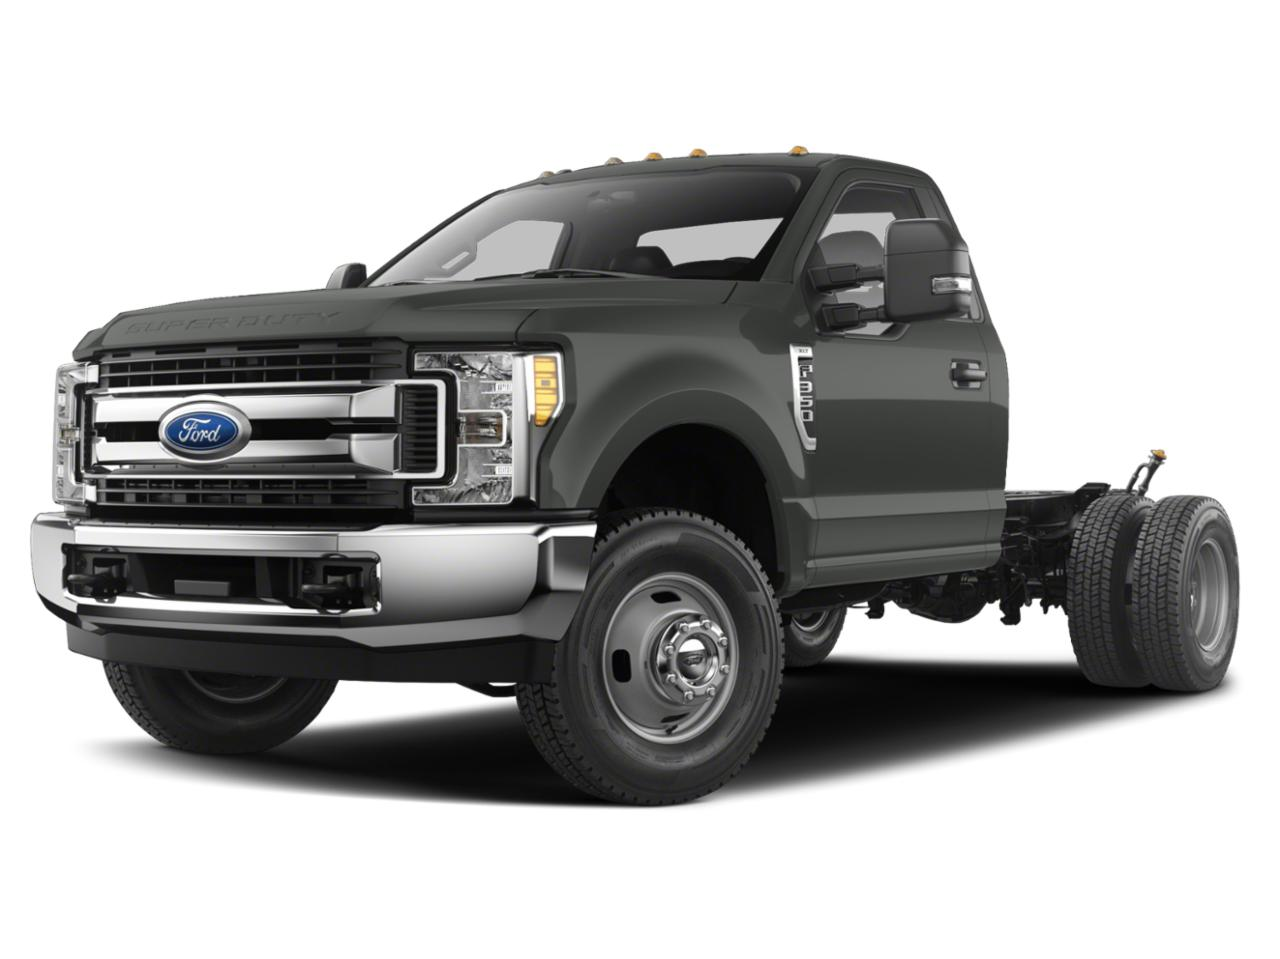 2018 Ford Super Duty F-350 DRW Vehicle Photo in GARDNER, MA 01440-3110